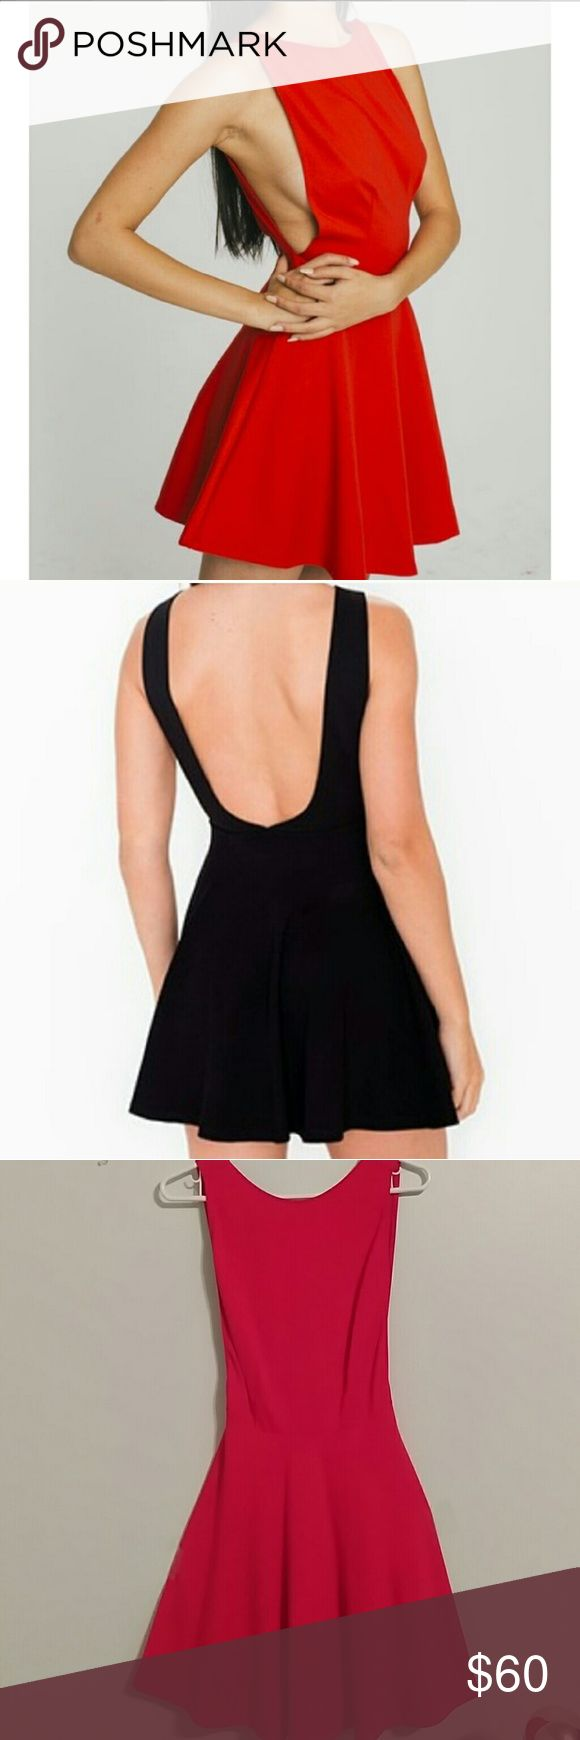 American Appeal side cleavage red hot dress Worn once American Apparel side cleavage dress. American Apparel Dresses